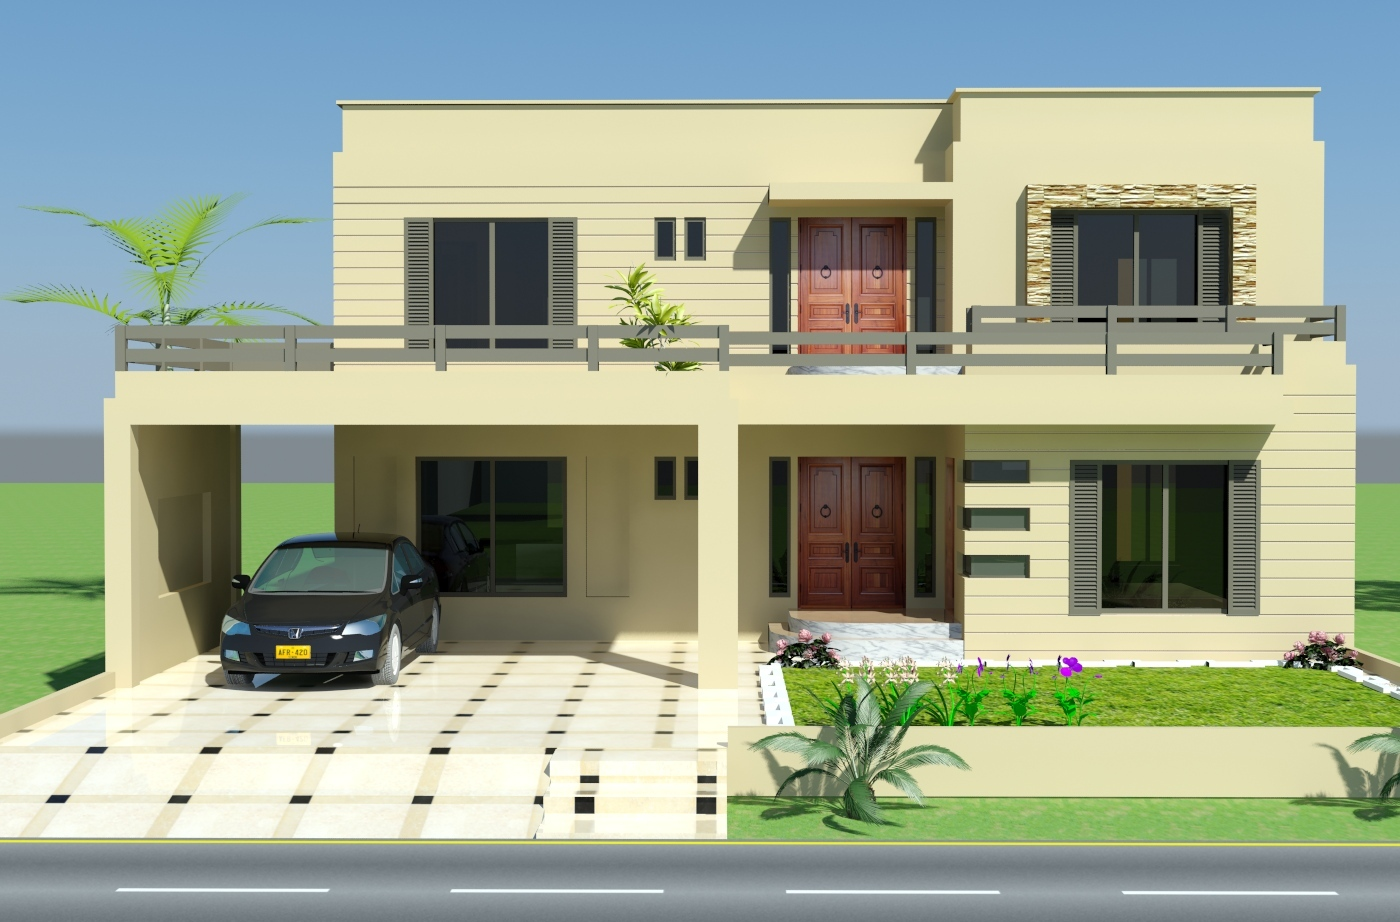 Groovy Exterior House Design Front Elevation Largest Home Design Picture Inspirations Pitcheantrous